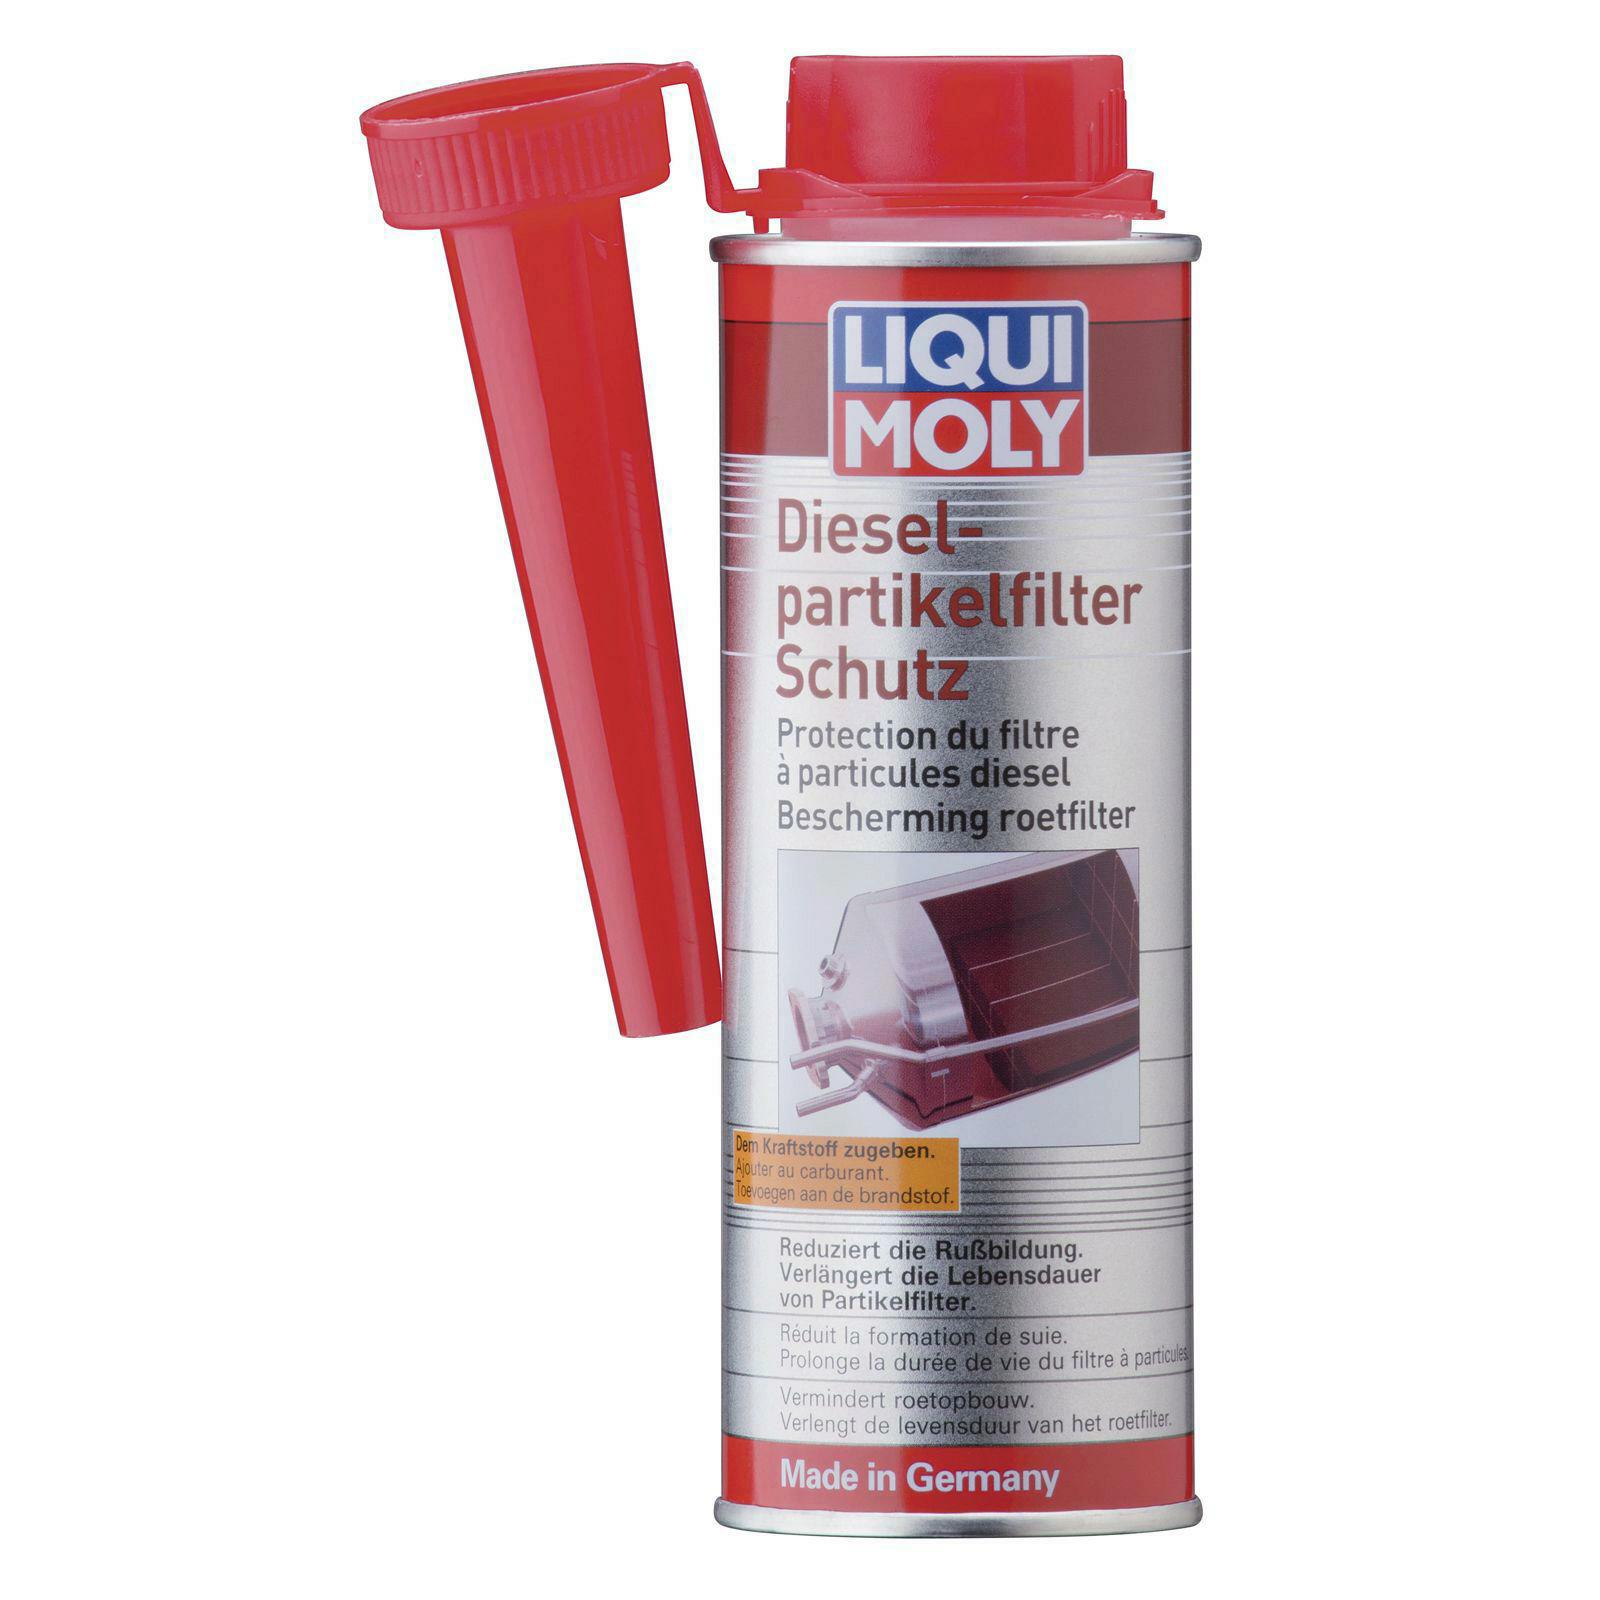 liqui moly diesel partikelfilter schutz 250ml 5148 xy313877 7 79 lott. Black Bedroom Furniture Sets. Home Design Ideas